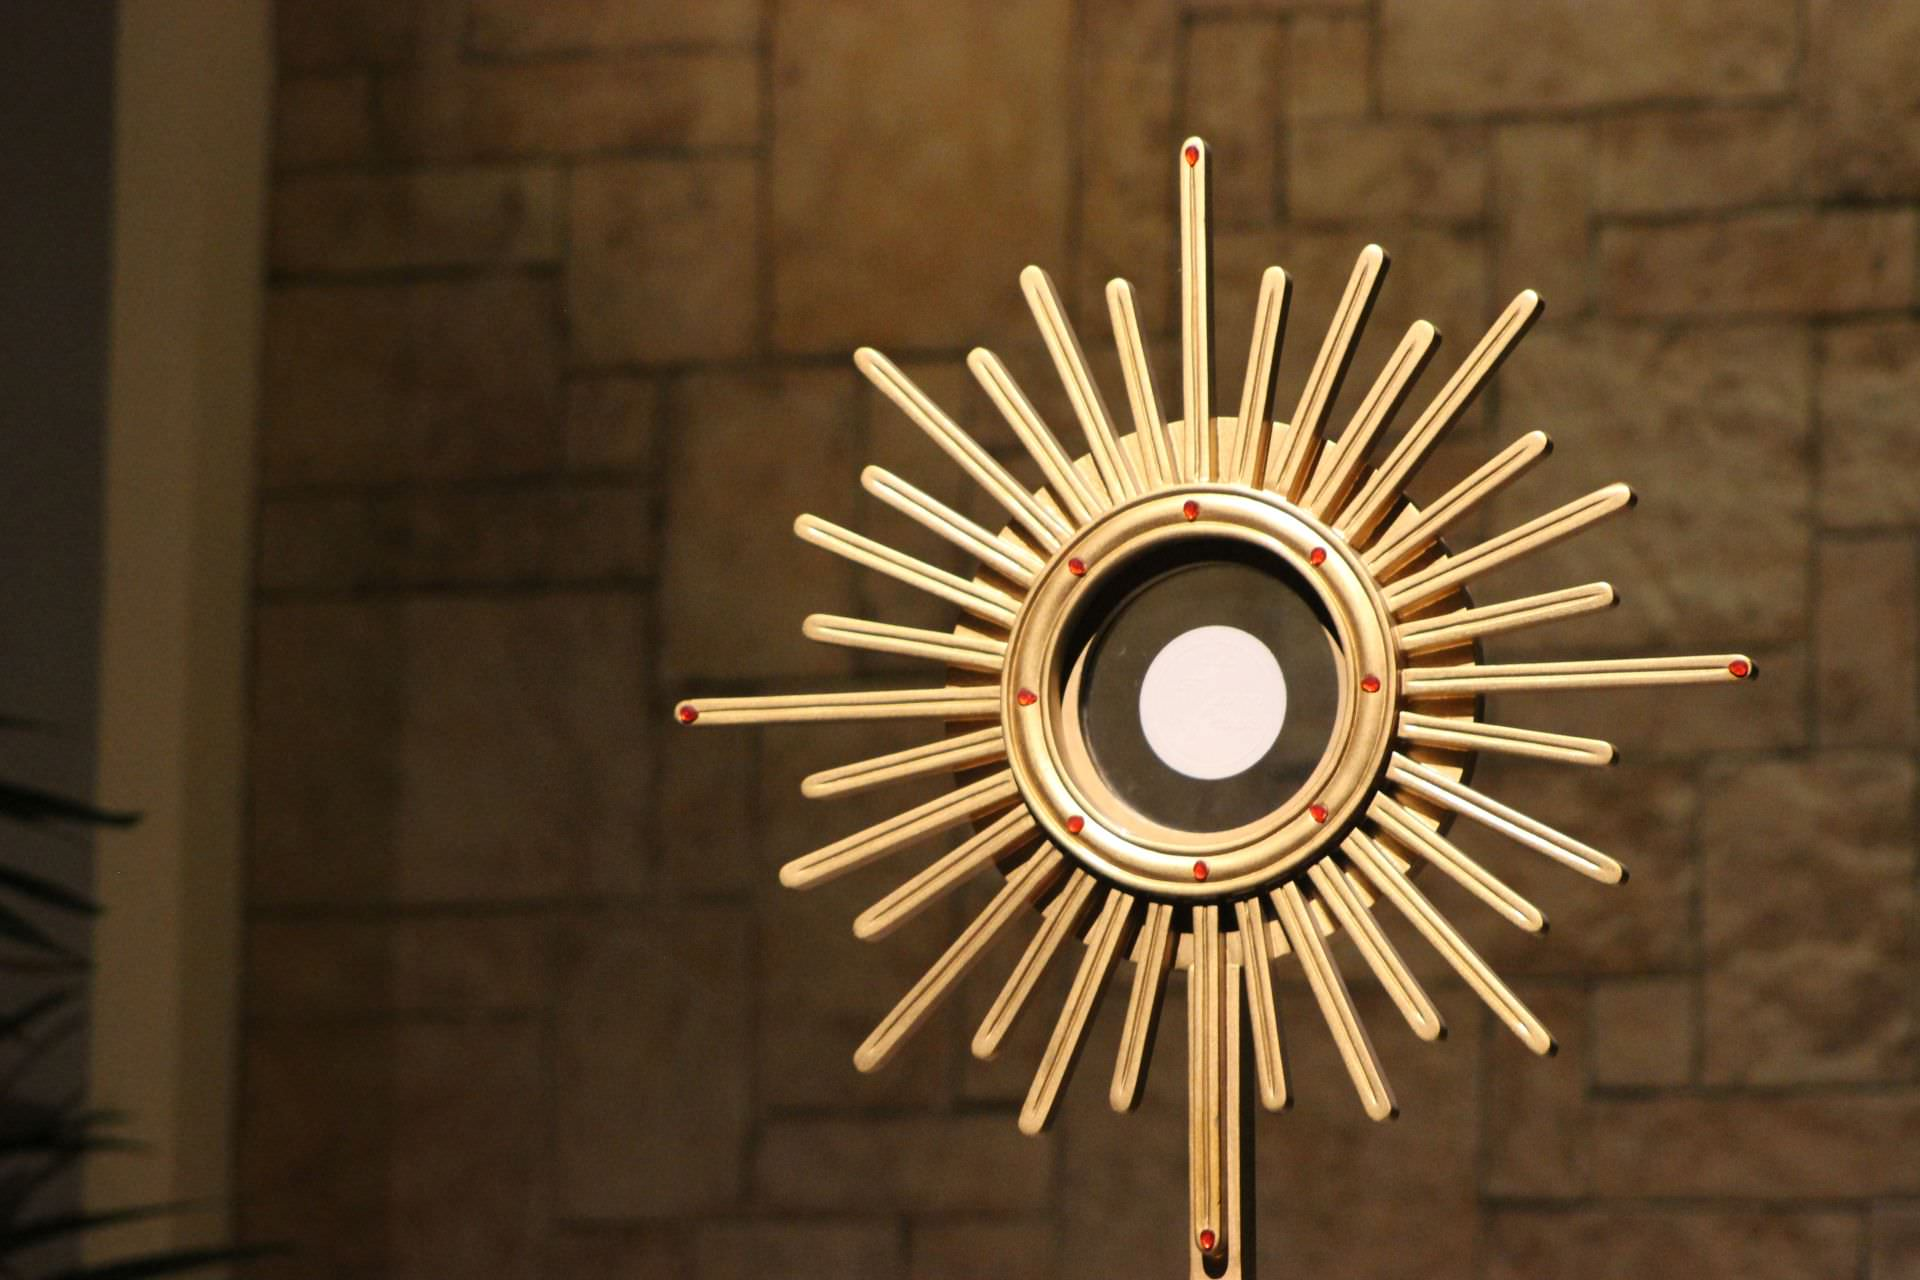 , , to worship, eucharist, blessed sacrament, worship, exposition, consecrated host, bread of life, ostensorio